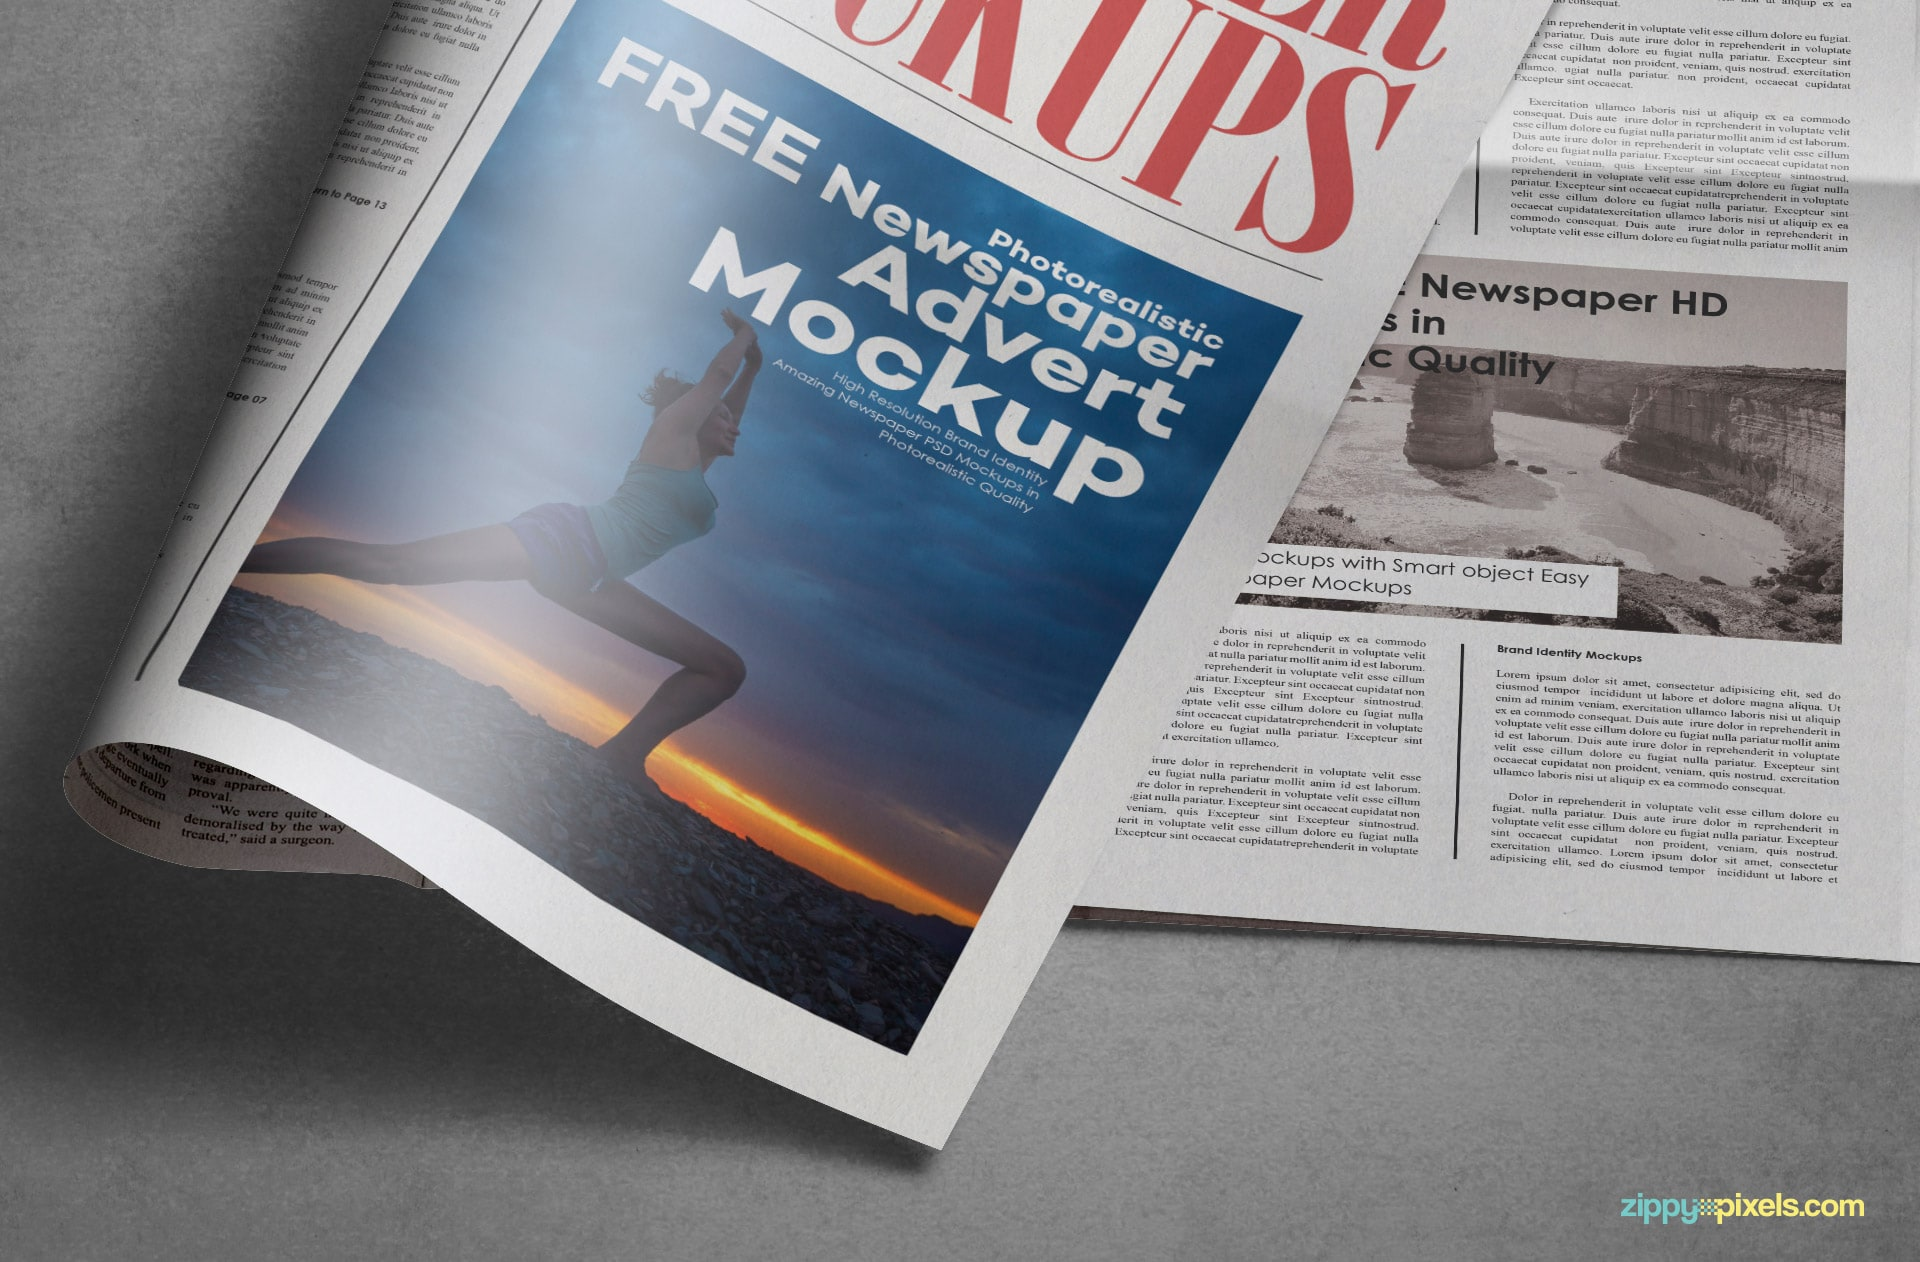 The Intelligent smart object of this tabloid newspaper mockup allows you to place in your design.